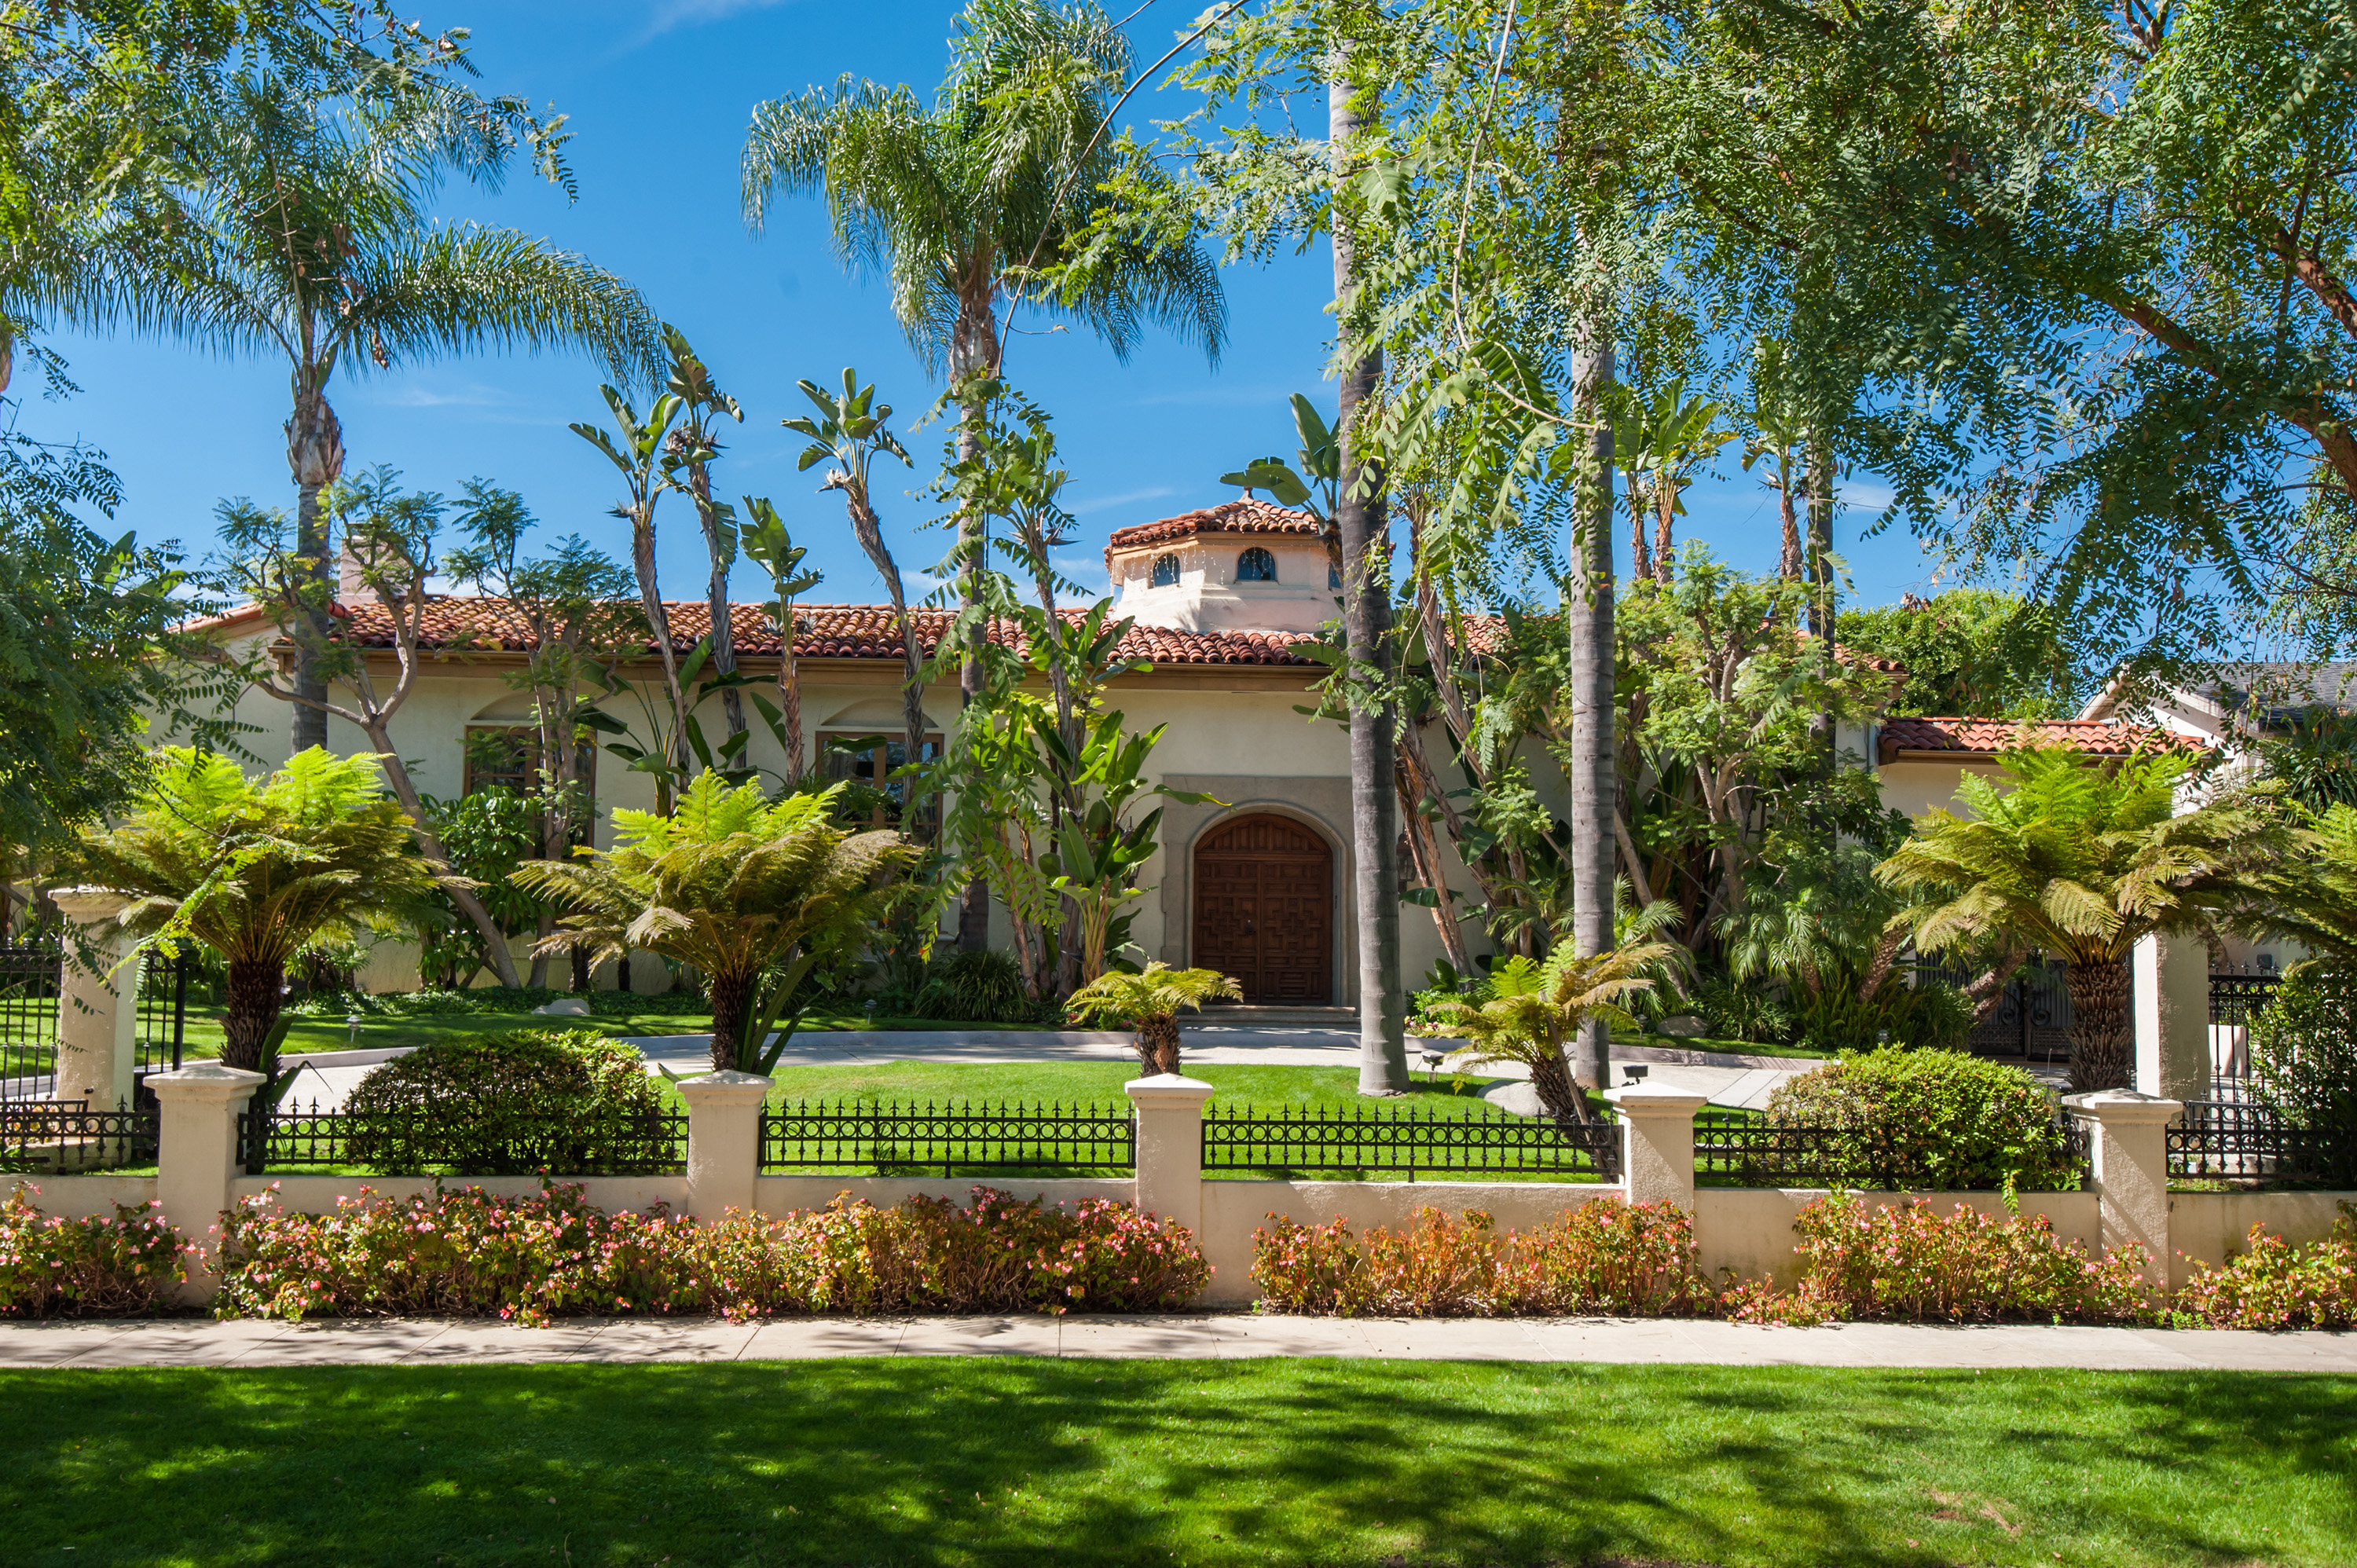 Los angeles celebrity homes curbed la for Celebrity home tours beverly hills